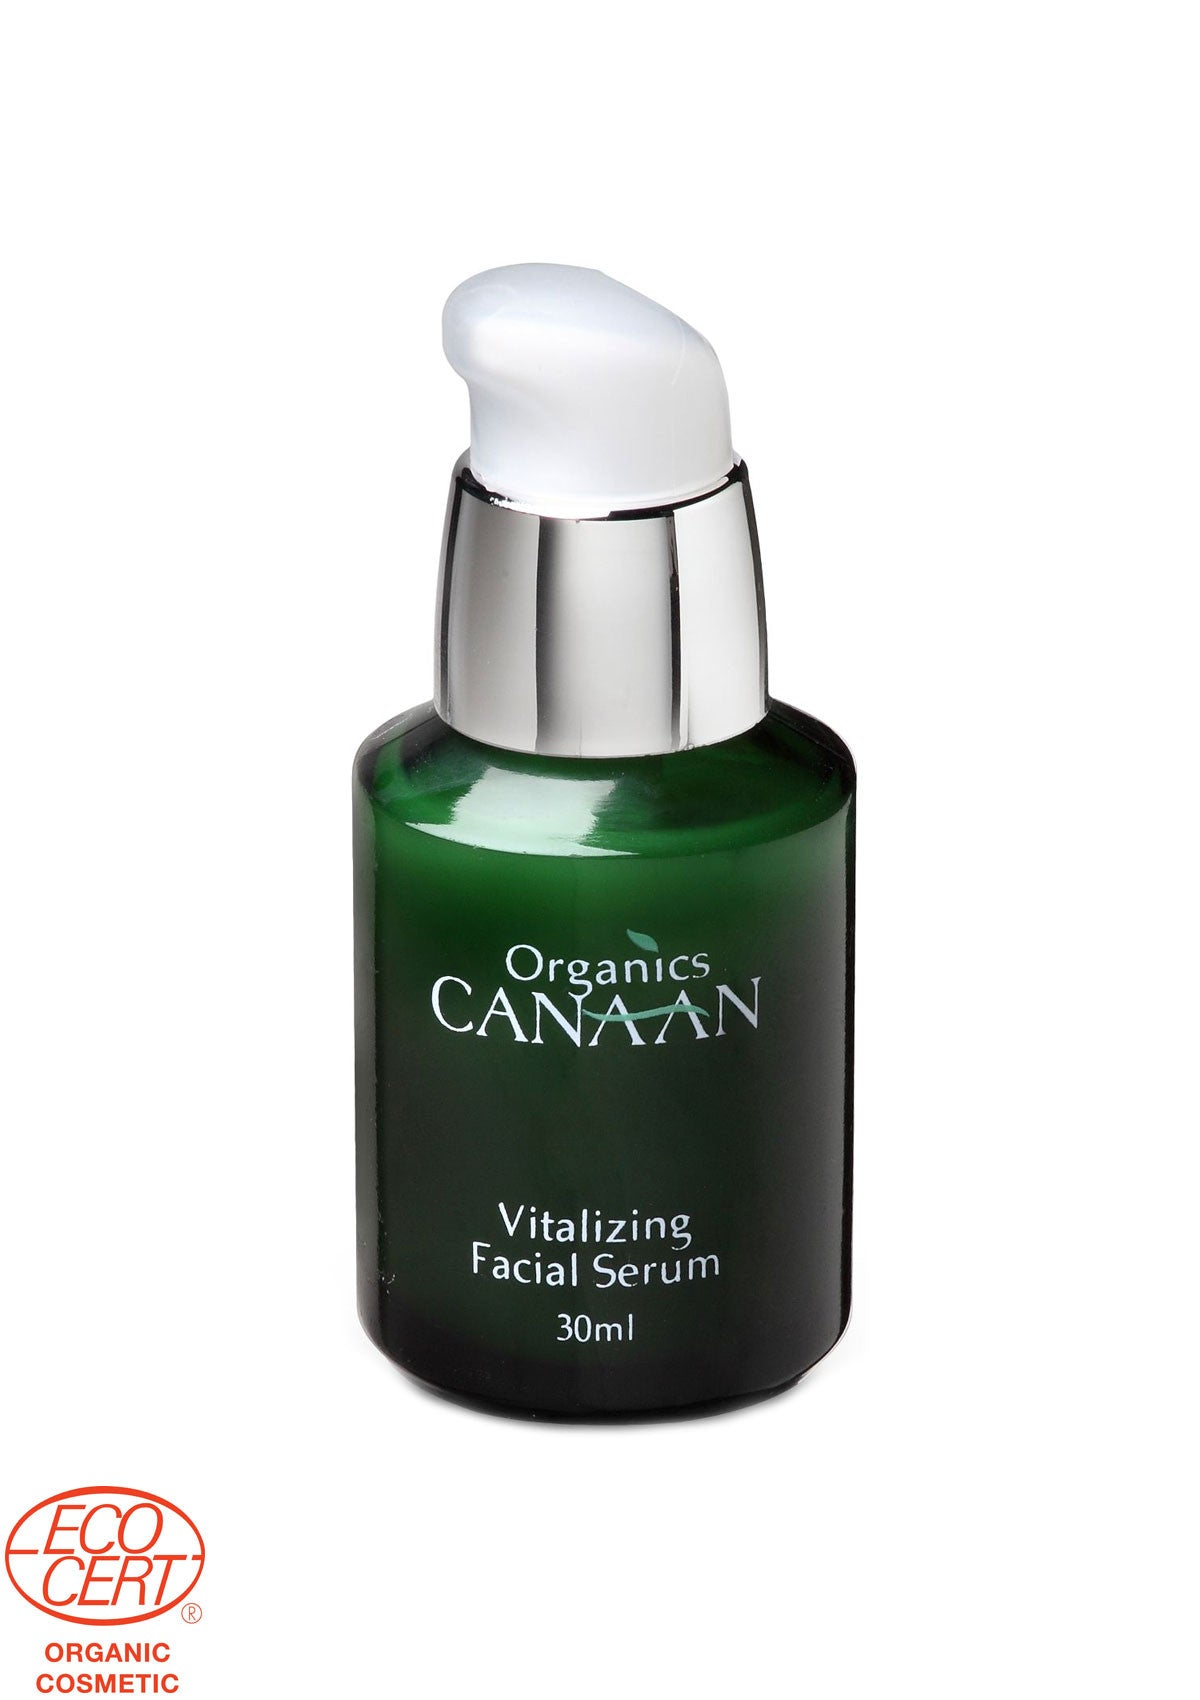 Canaan Organic - Vitalizing Facial Serum - DeadSeaShop.co.uk